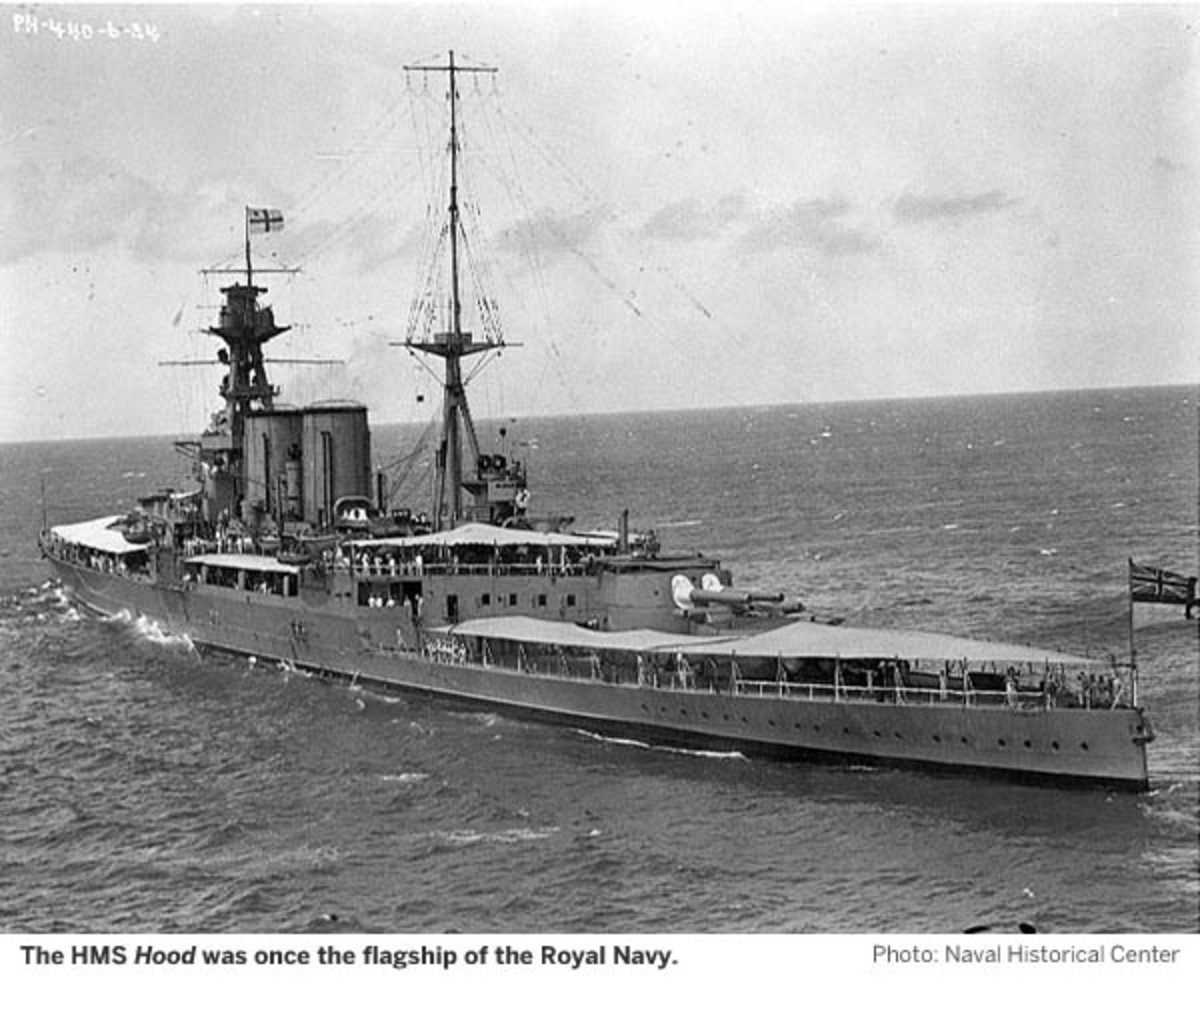 The HMS Hood was once the flagship of the Royal Navy. Photo Credit: Naval Historical Center